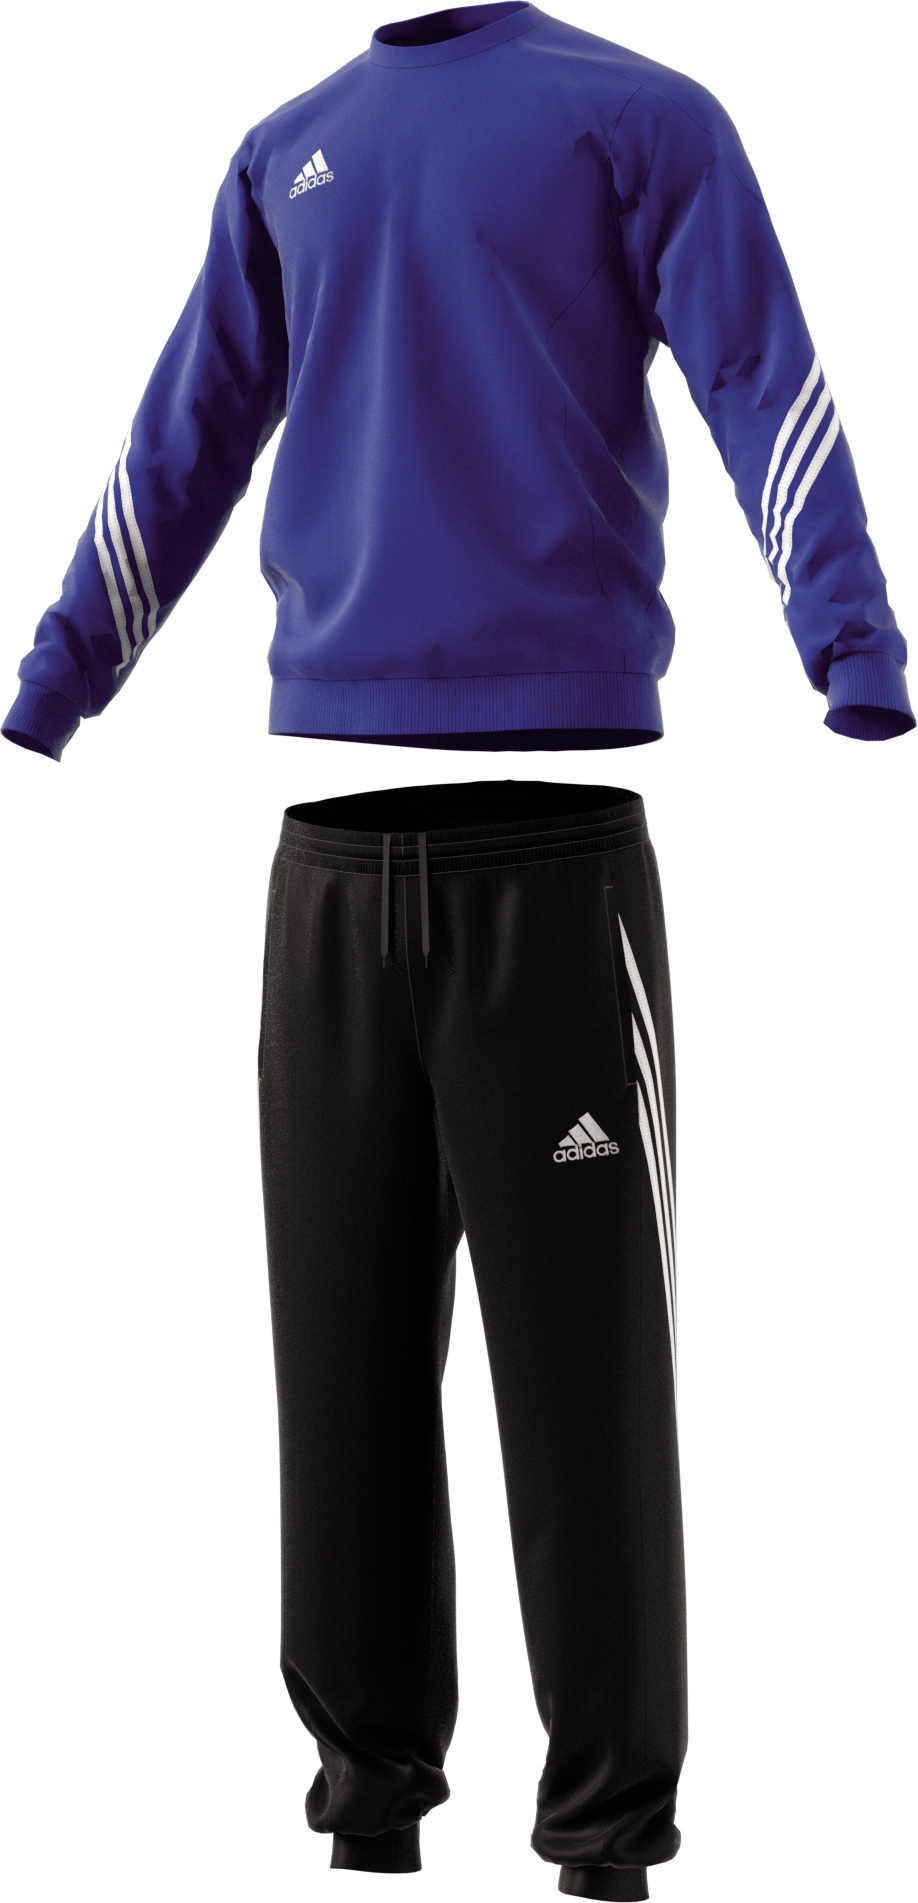 Herren Trainingsanzug Sereno 14 Sweat Suit